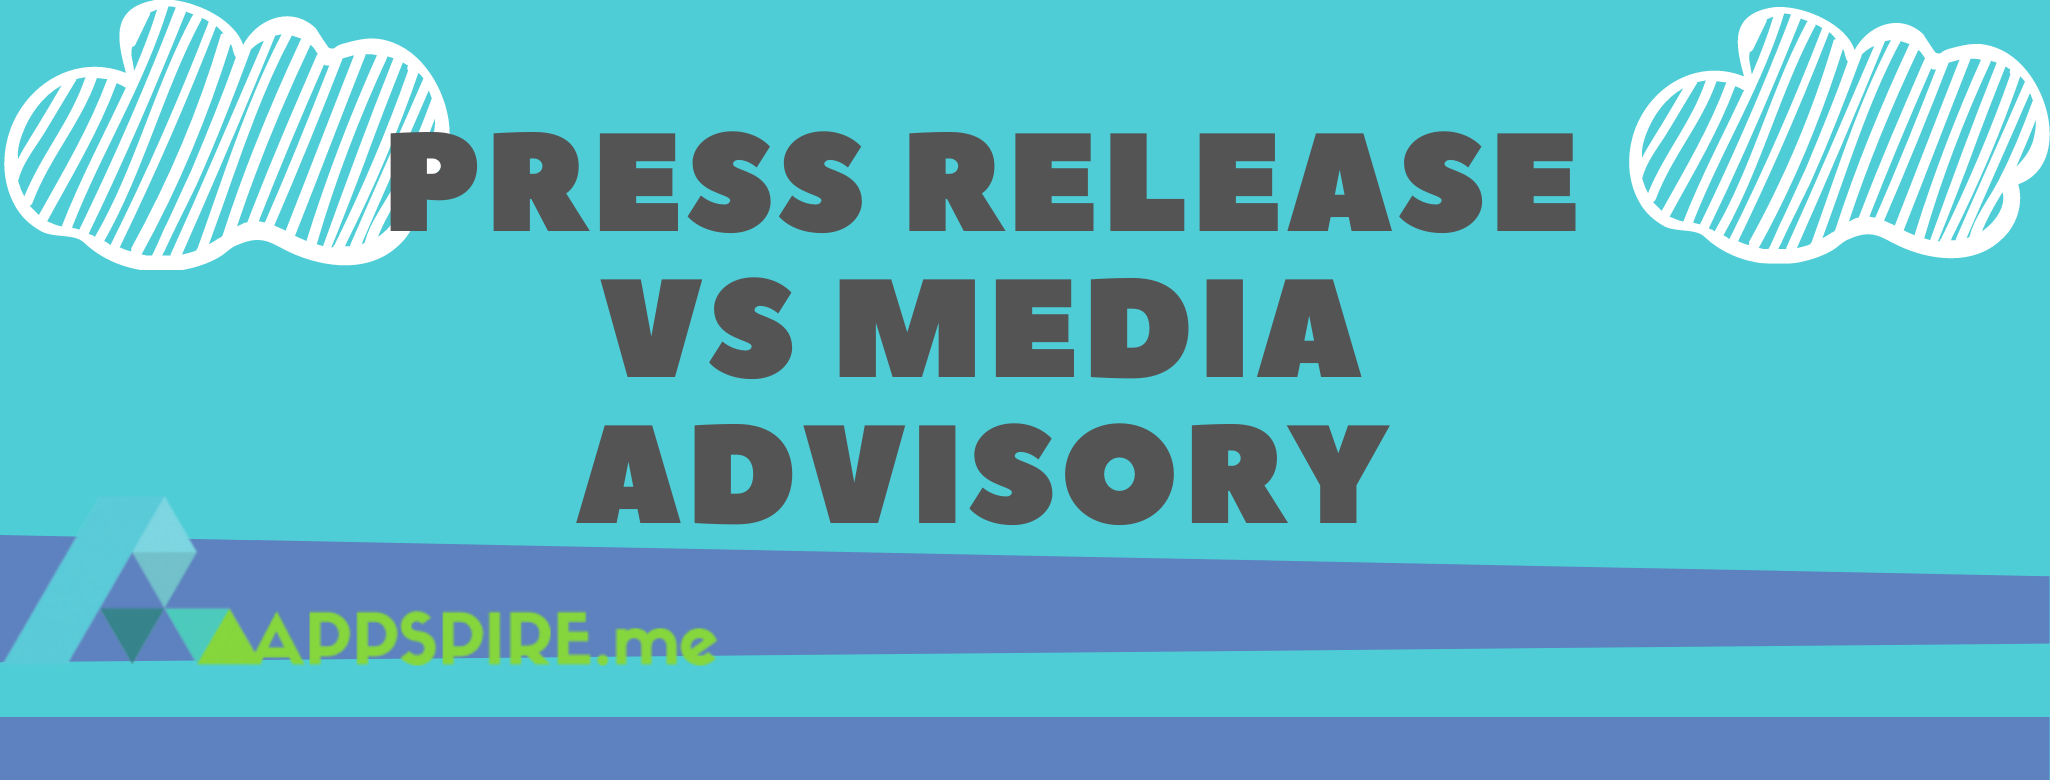 Press Release vs. Media Advisory